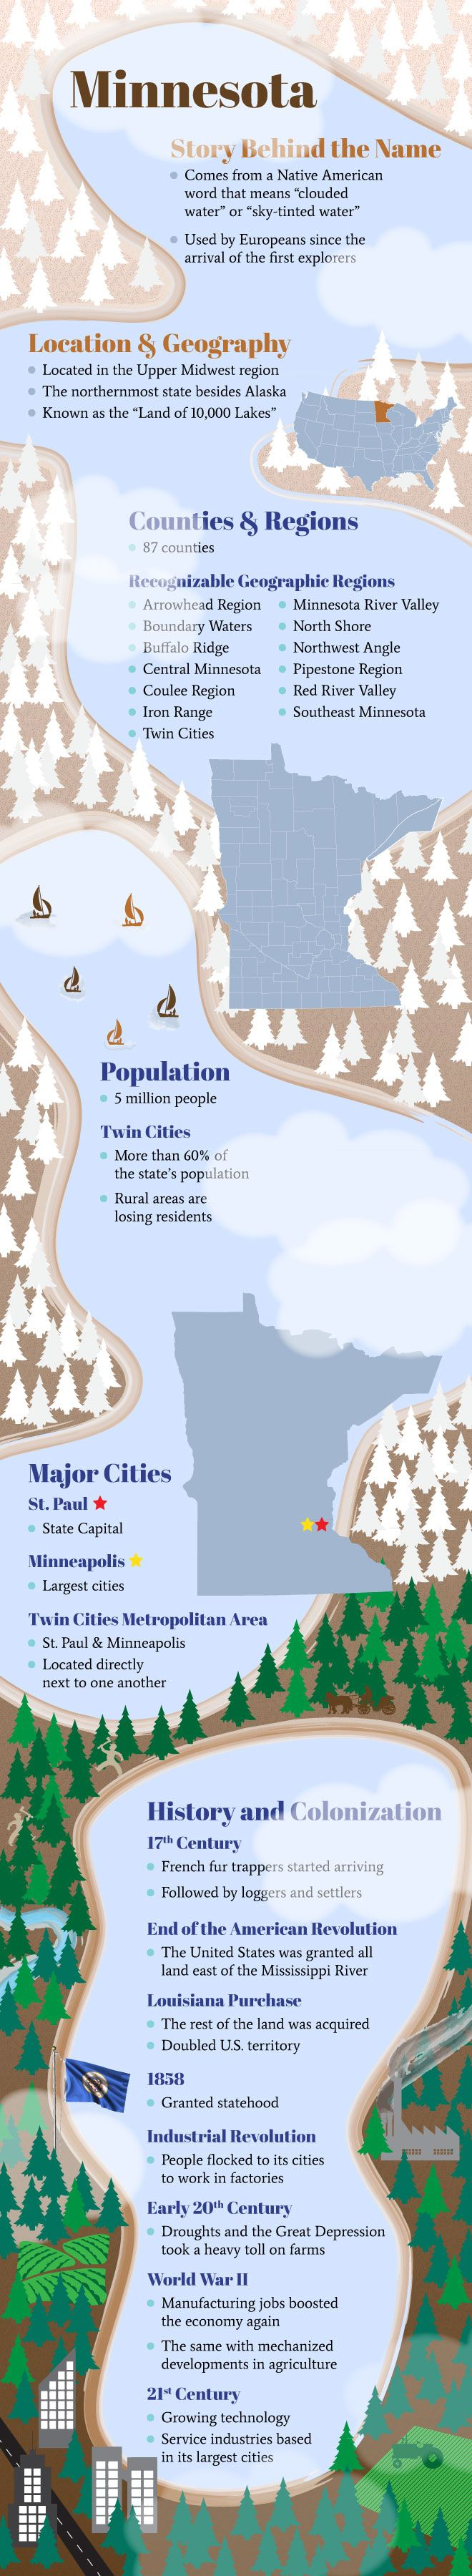 Infographic of Minnesota Facts